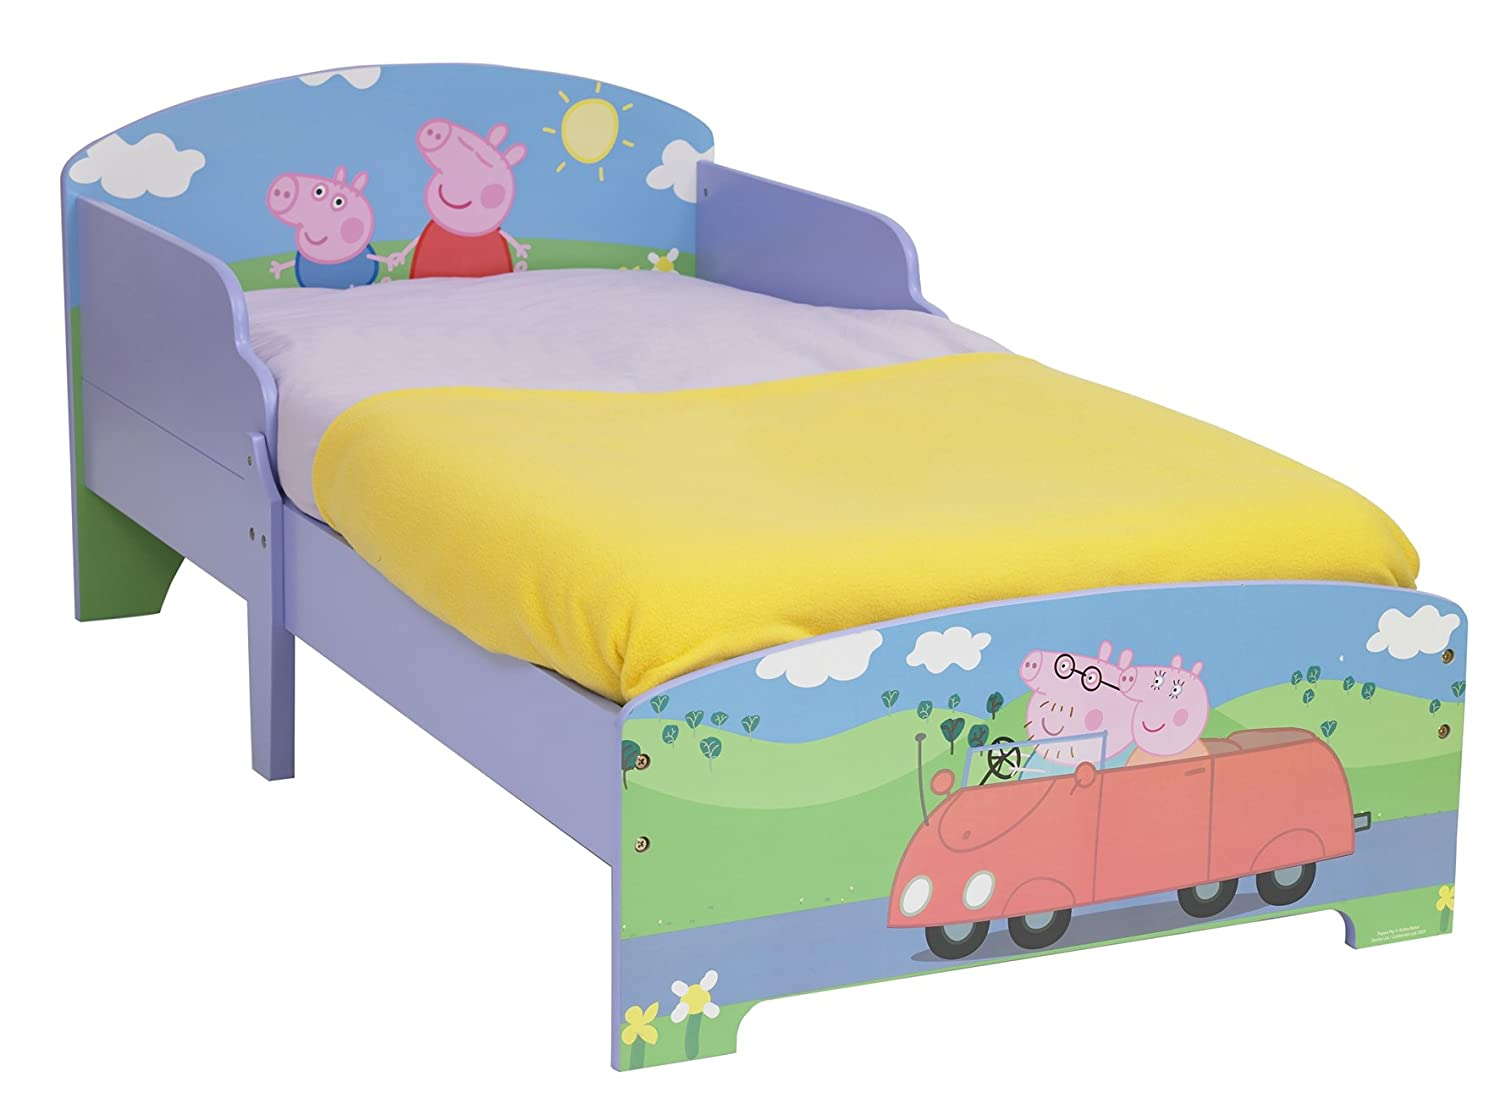 Peppa Pig Bedroom Furniture Peppa Pig Toddler Bed By Hellohome Amazoncouk Kitchen Home